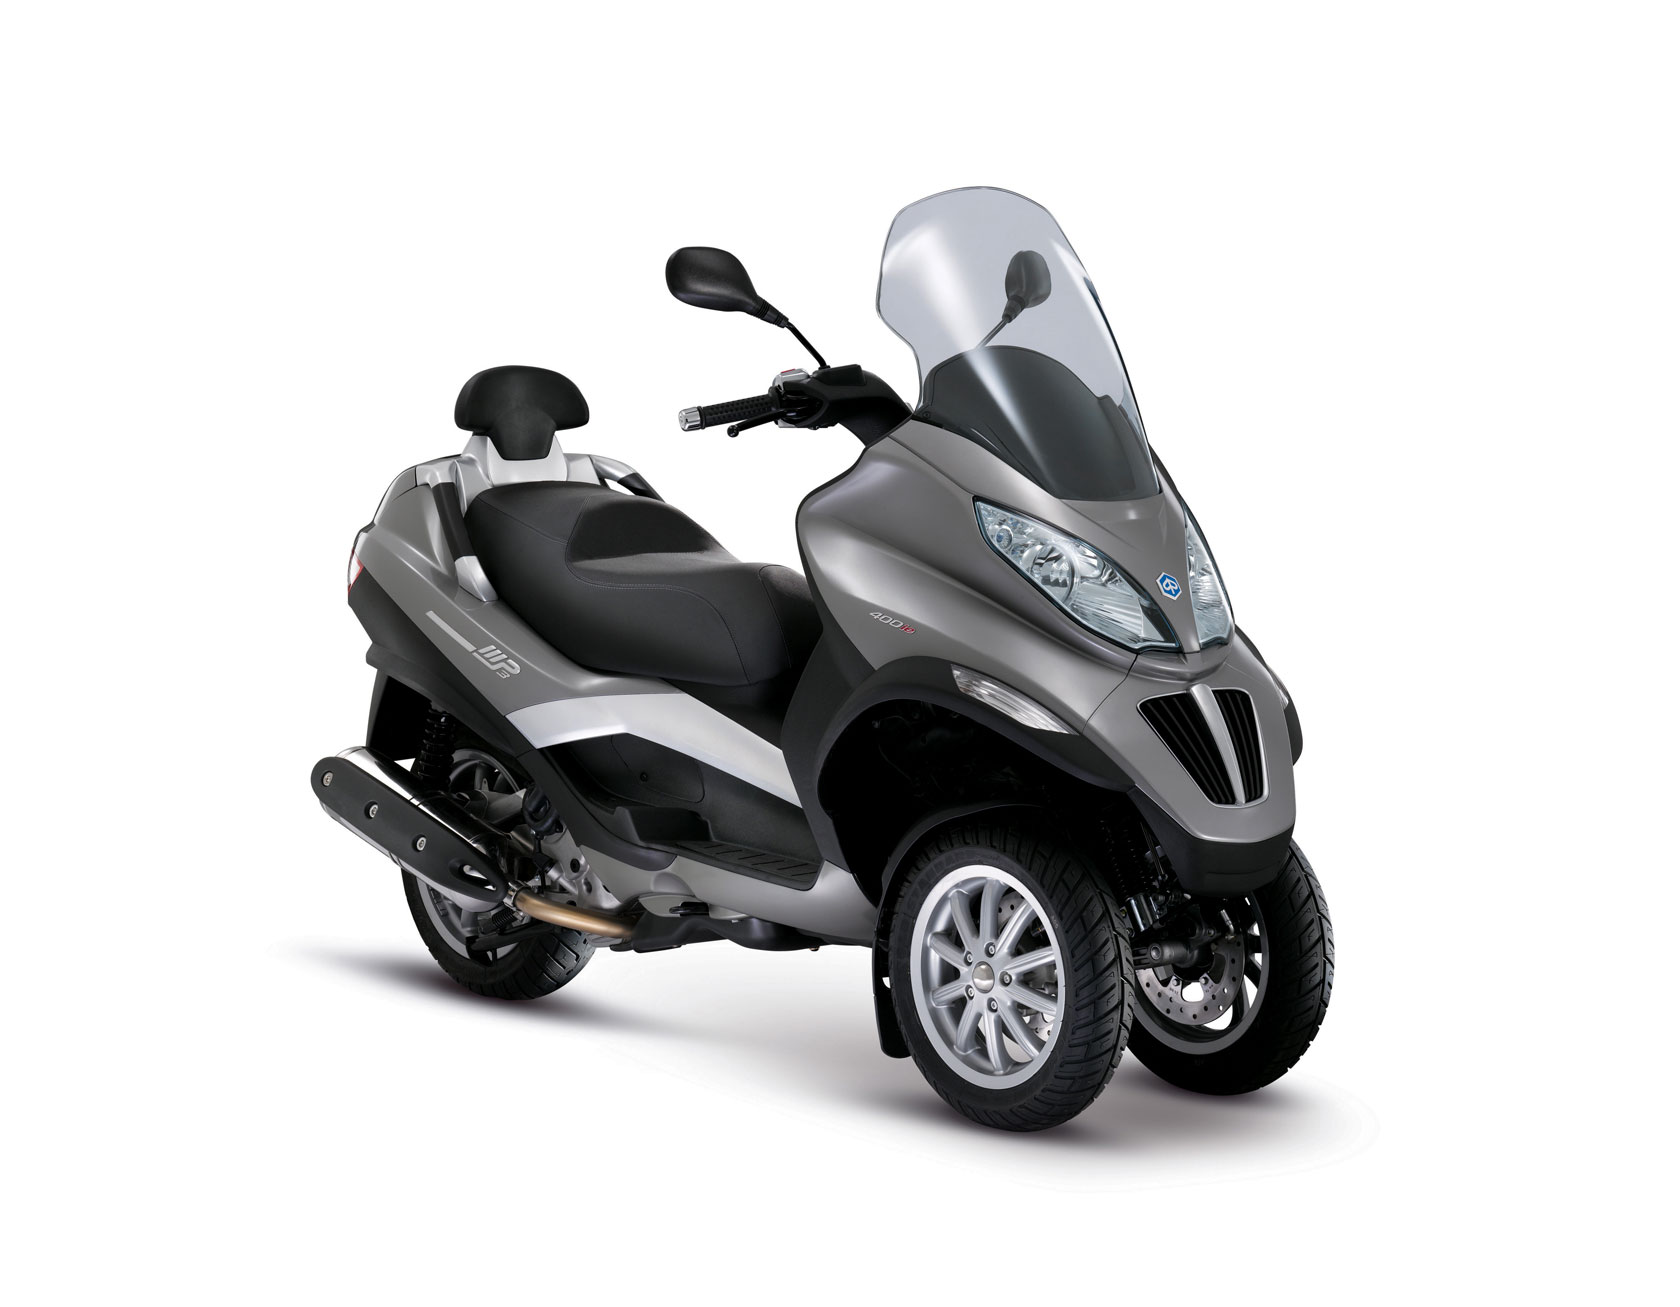 Piaggio MP3 400 2011 images #120672